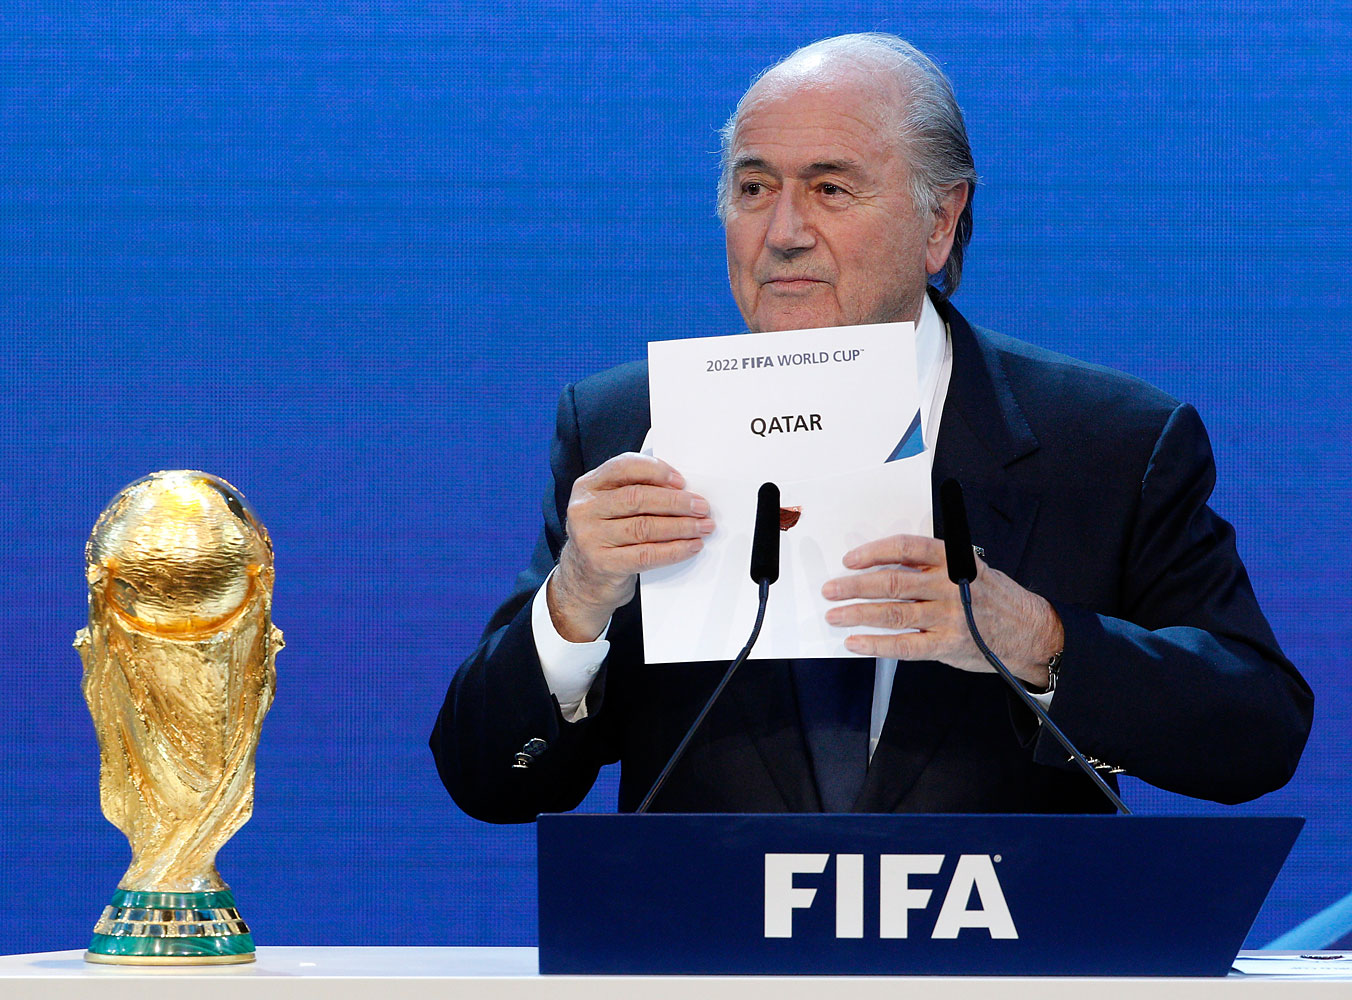 FIFA President Sepp Blatter announces Qatar as the host nation for the FIFA World Cup 2022, in Zurich, Dec. 2, 2010. A bribery scandal may cost the Middle Eastern nation the tournament.